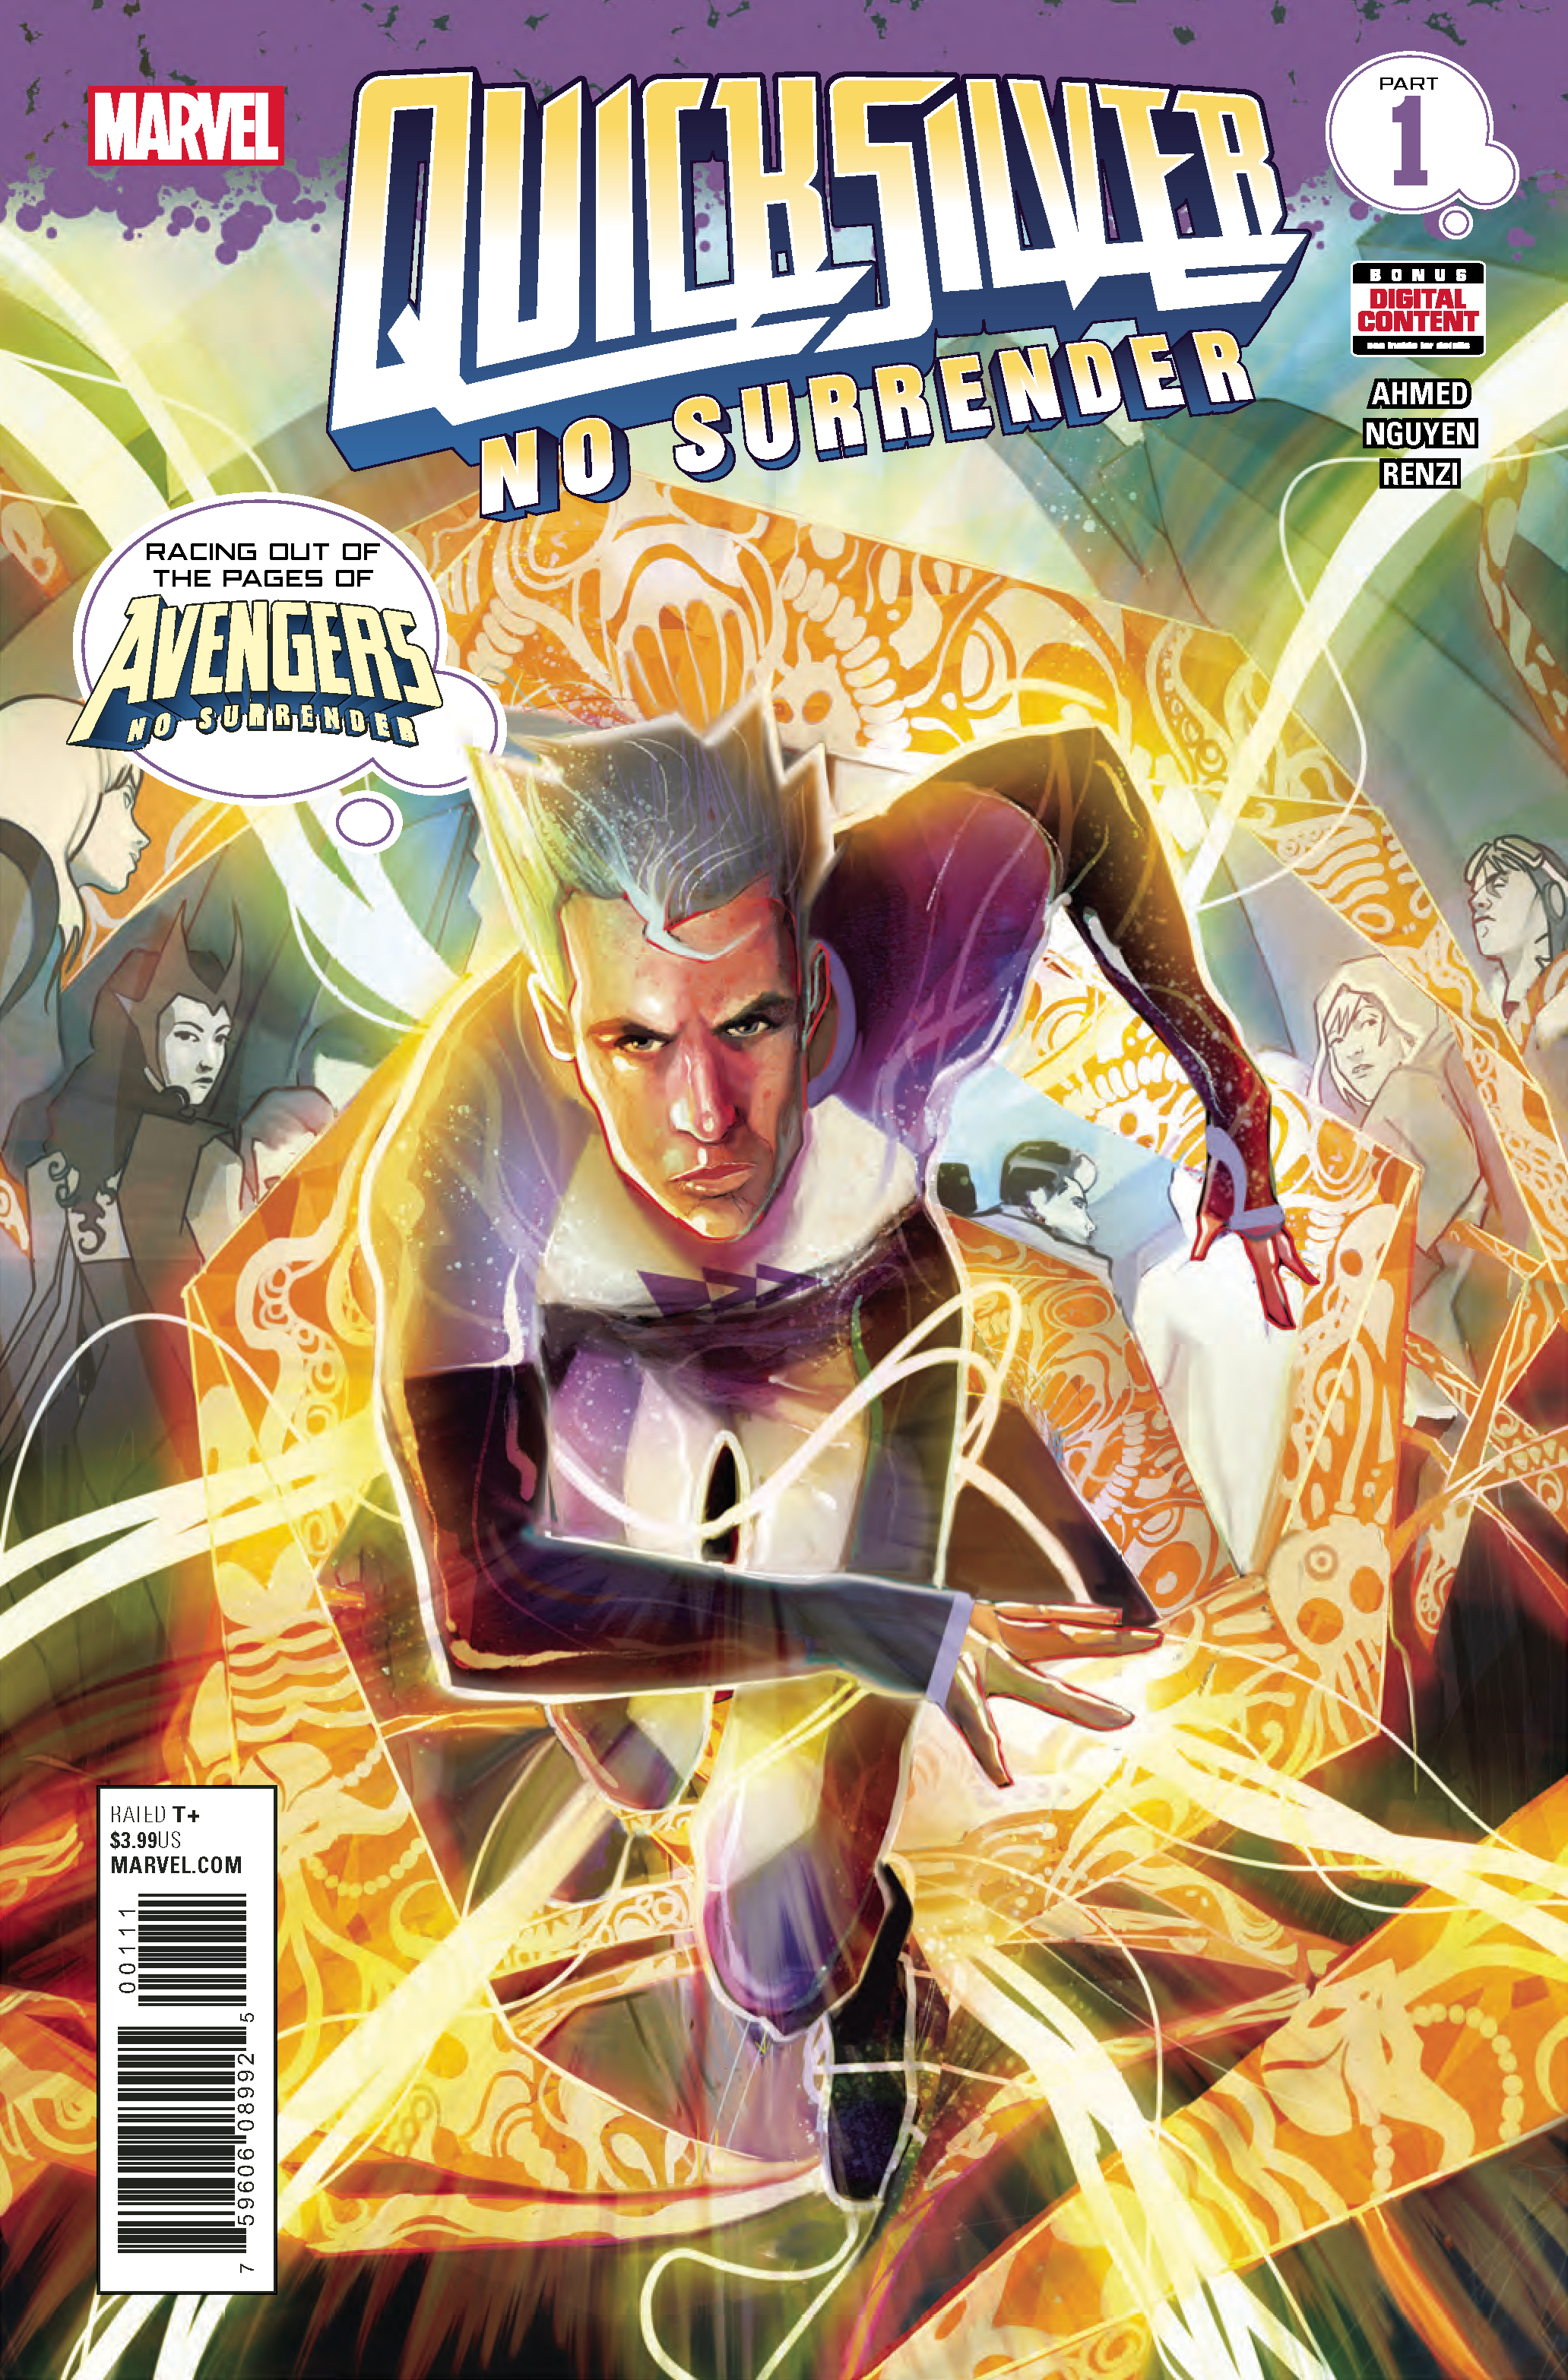 QUICKSILVER NO SURRENDER #1 (OF 5)